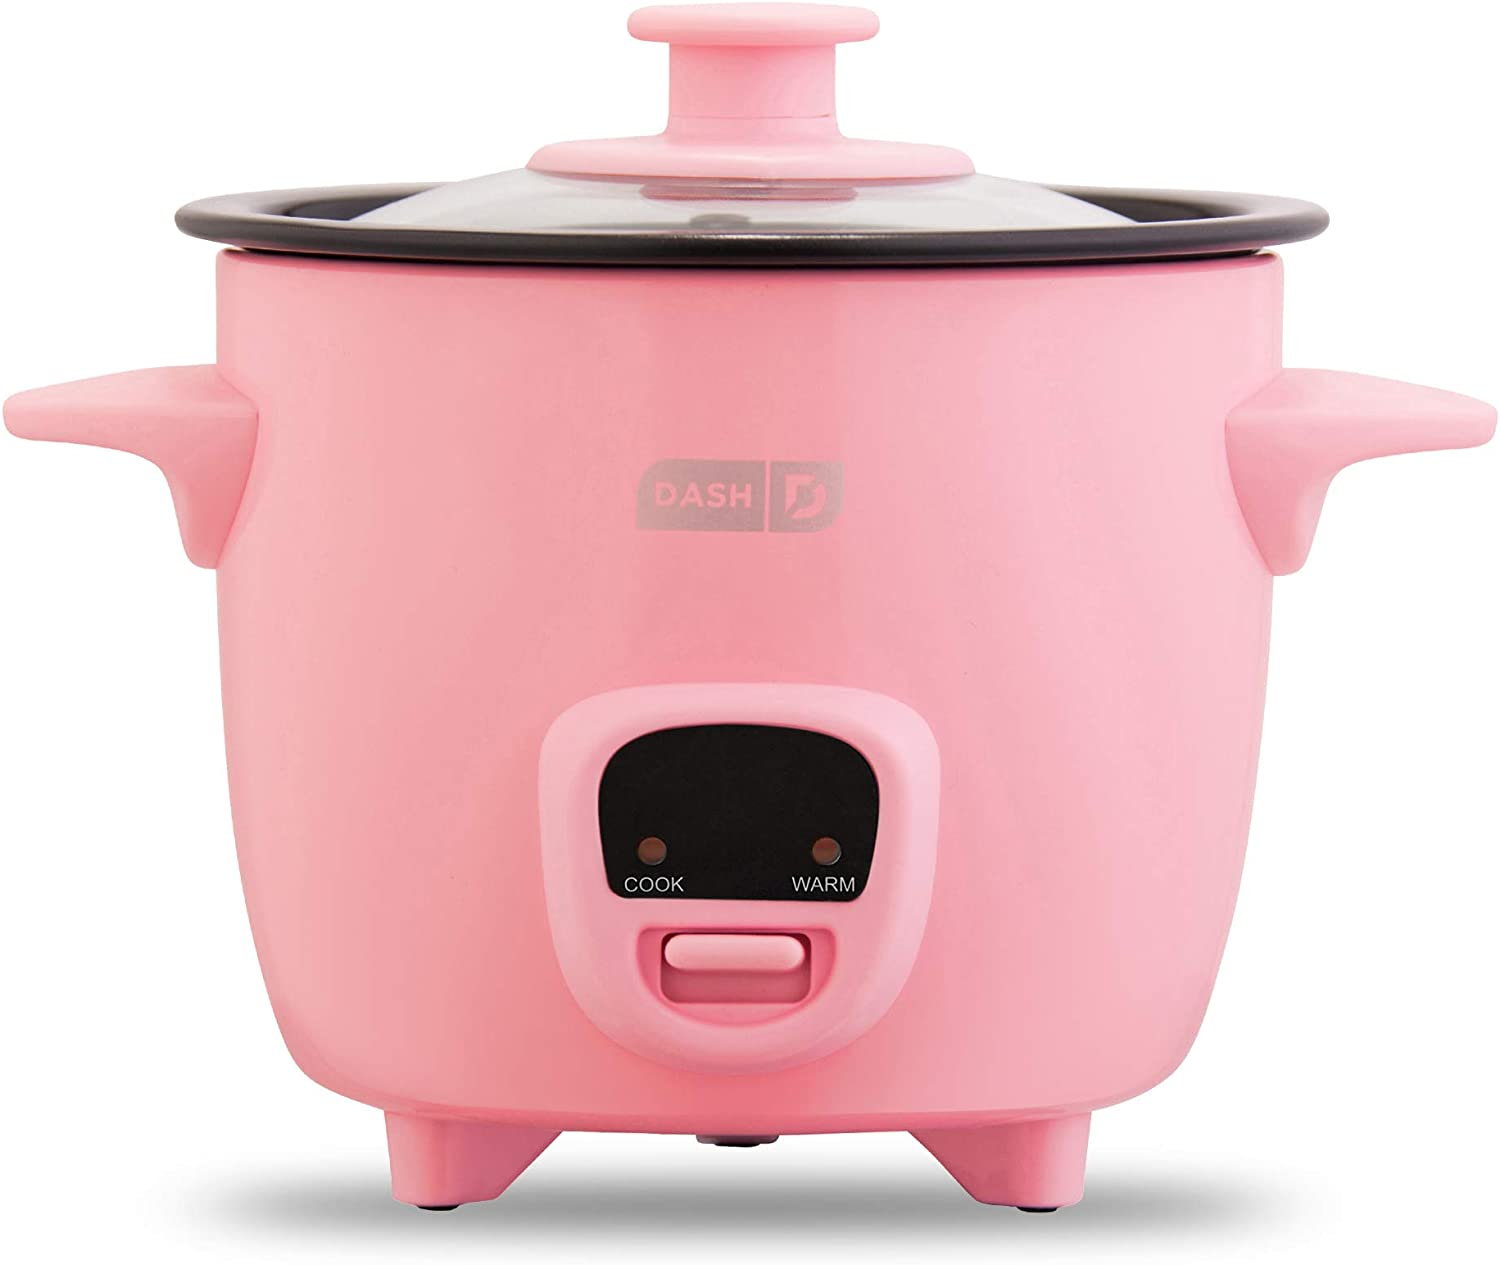 Dash DRCM200GBPK04 Mini Rice Cooker Steamer with Removable Nonstick Pot, Keep Warm Function & Recipe Guide, 2 cups, for Soups, Stews, Grains & Oatmeal, Pink